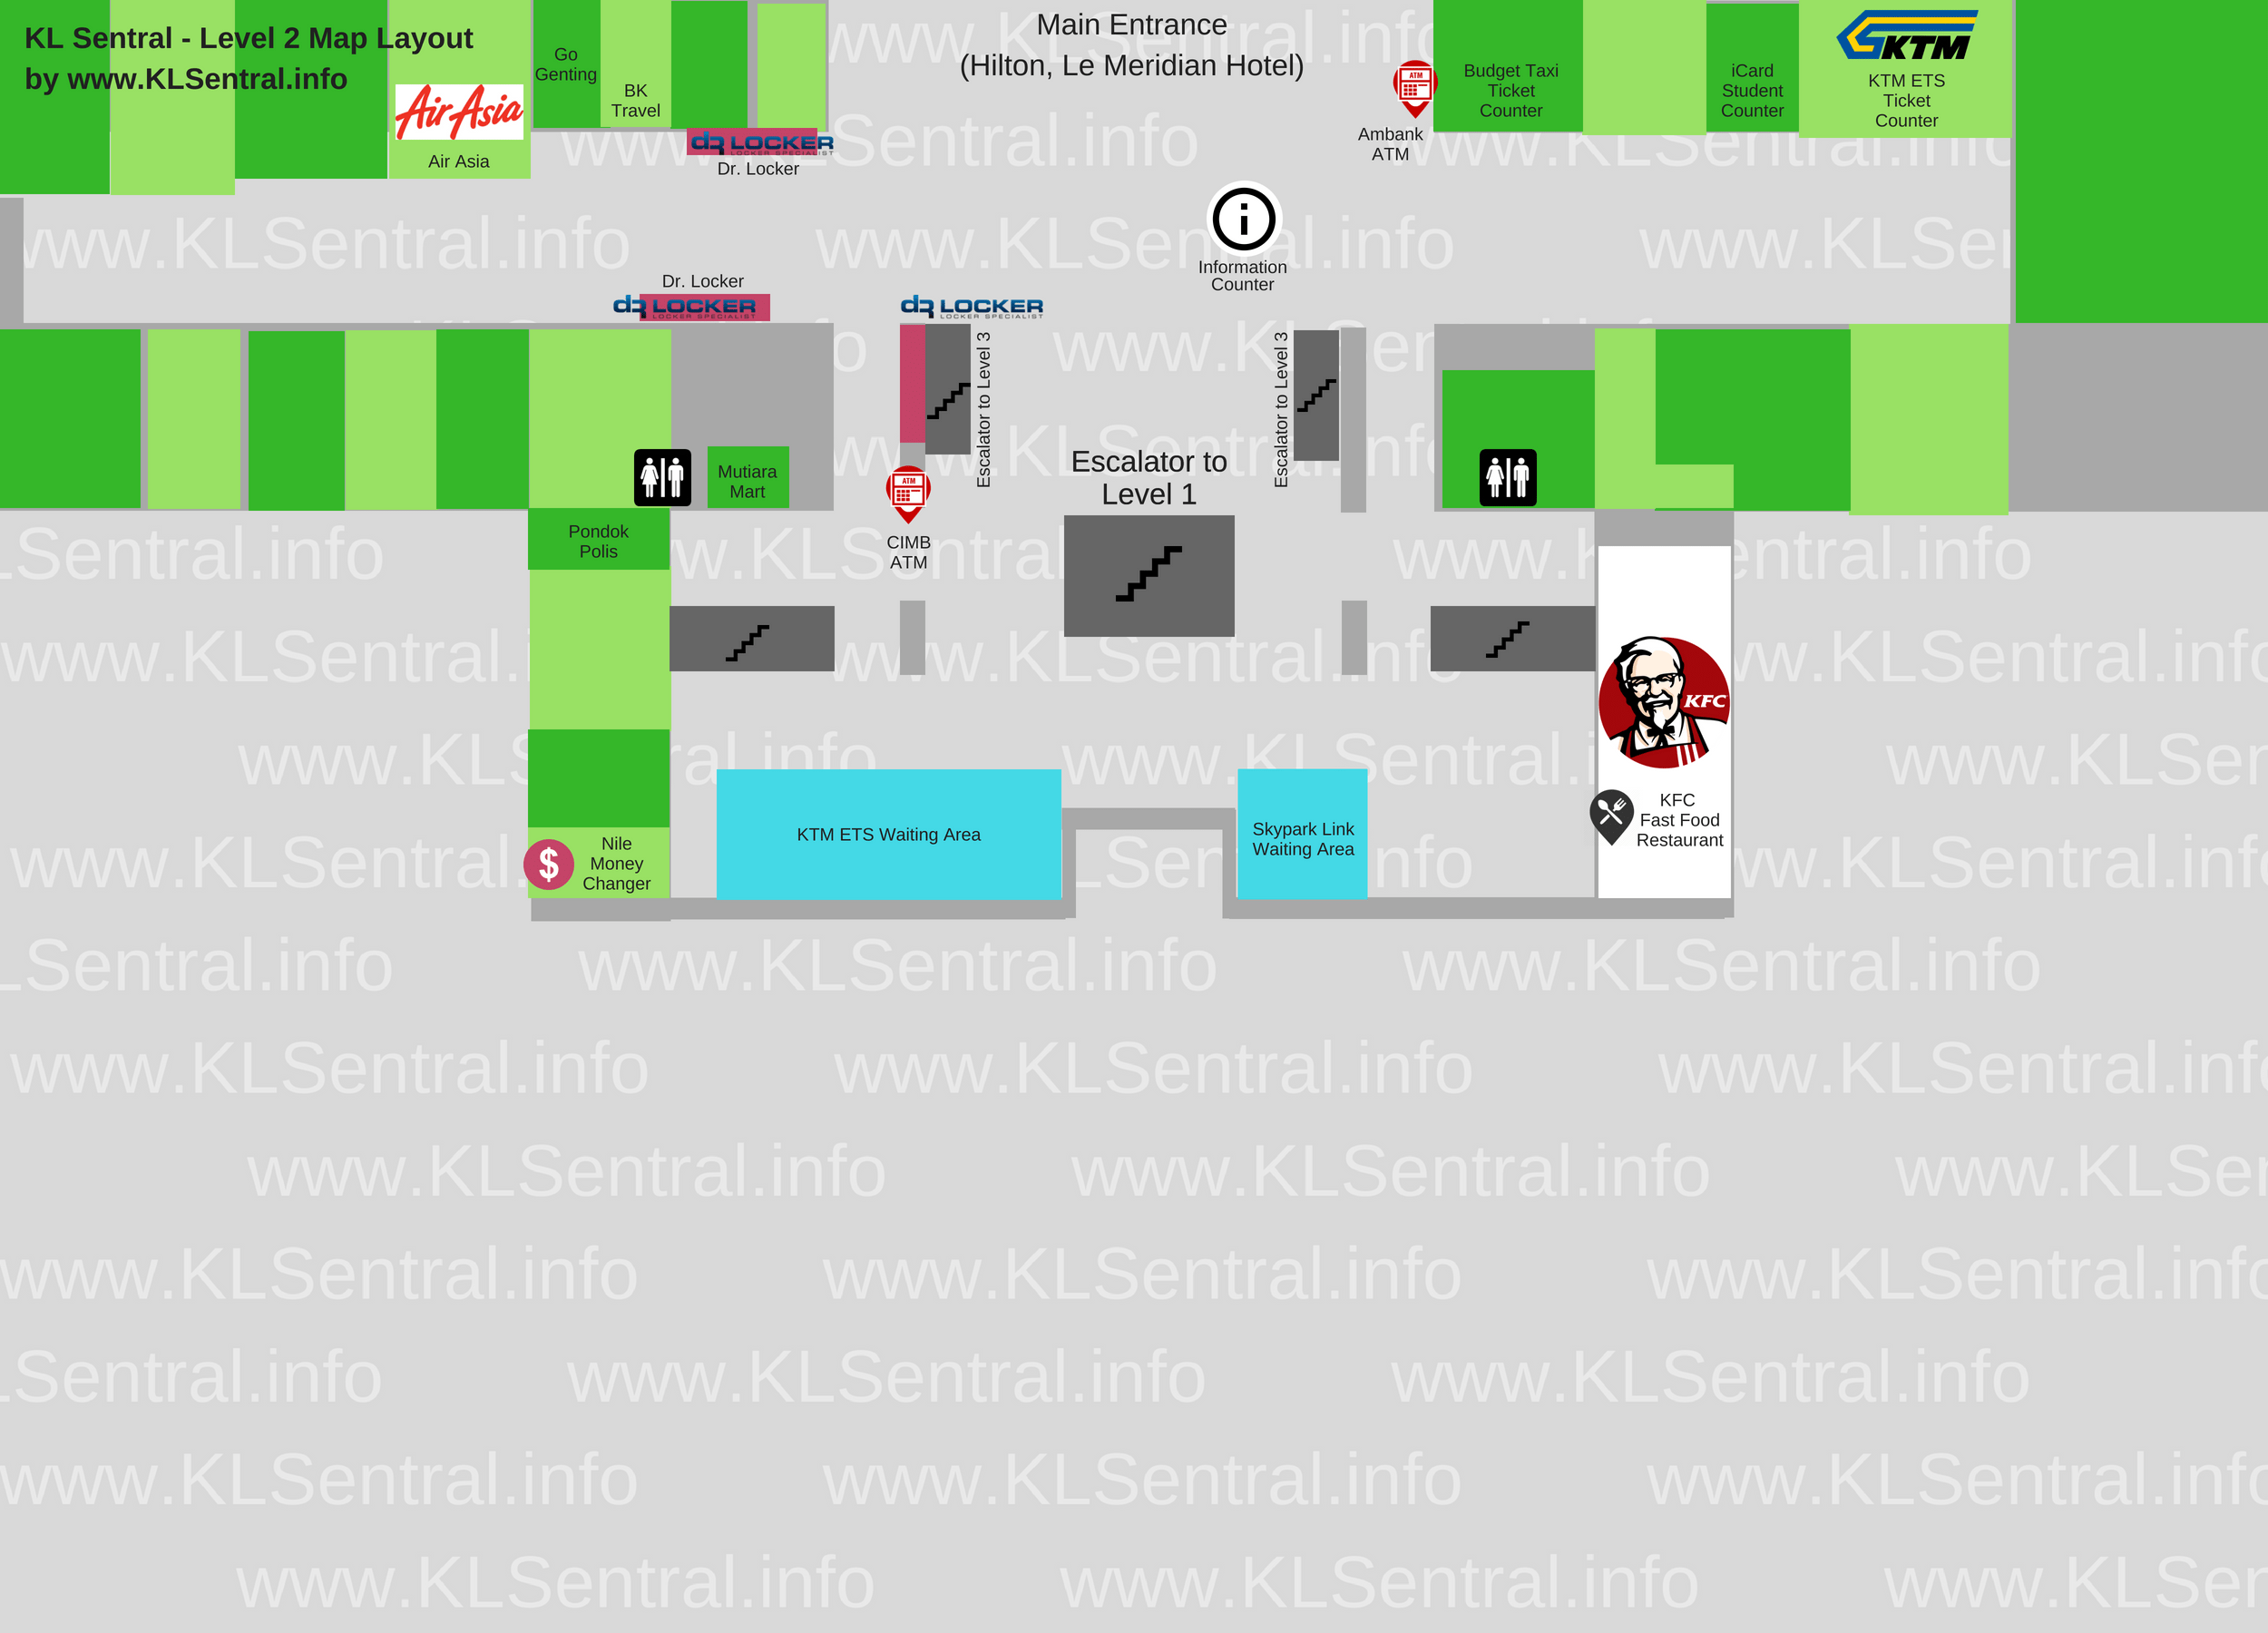 KL Sentral Station Directory Level 2 Map